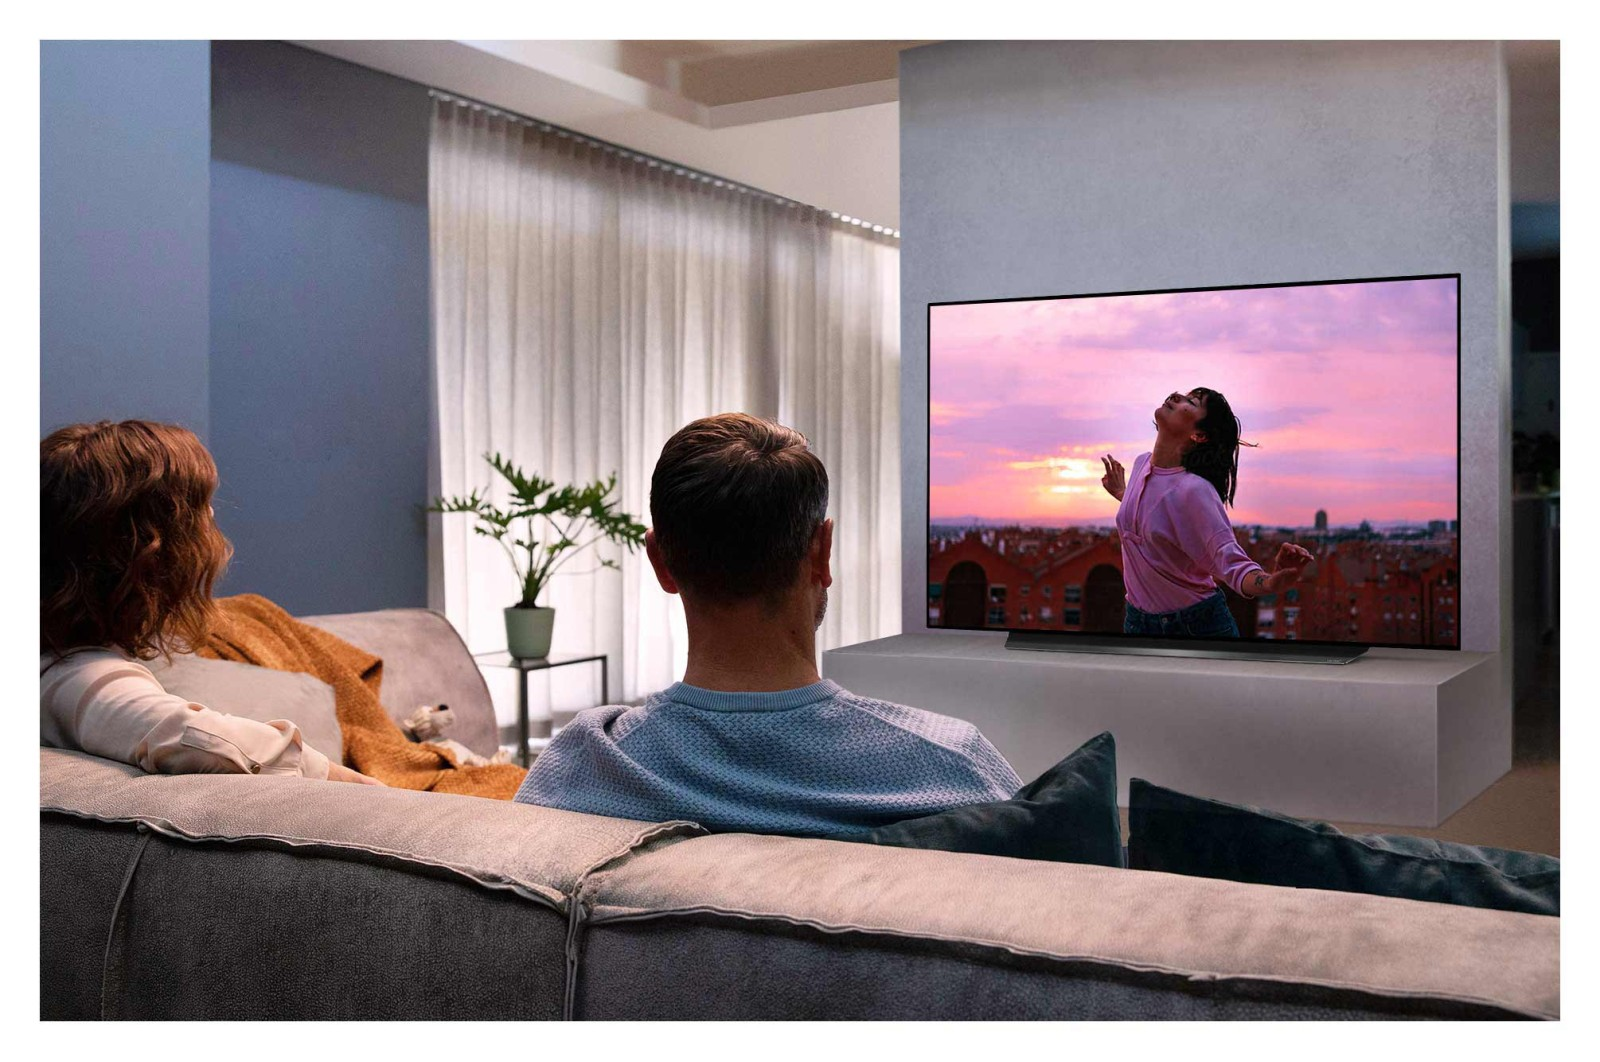 LG OLED TVs were among the first to market with HDMI 2.1 features.